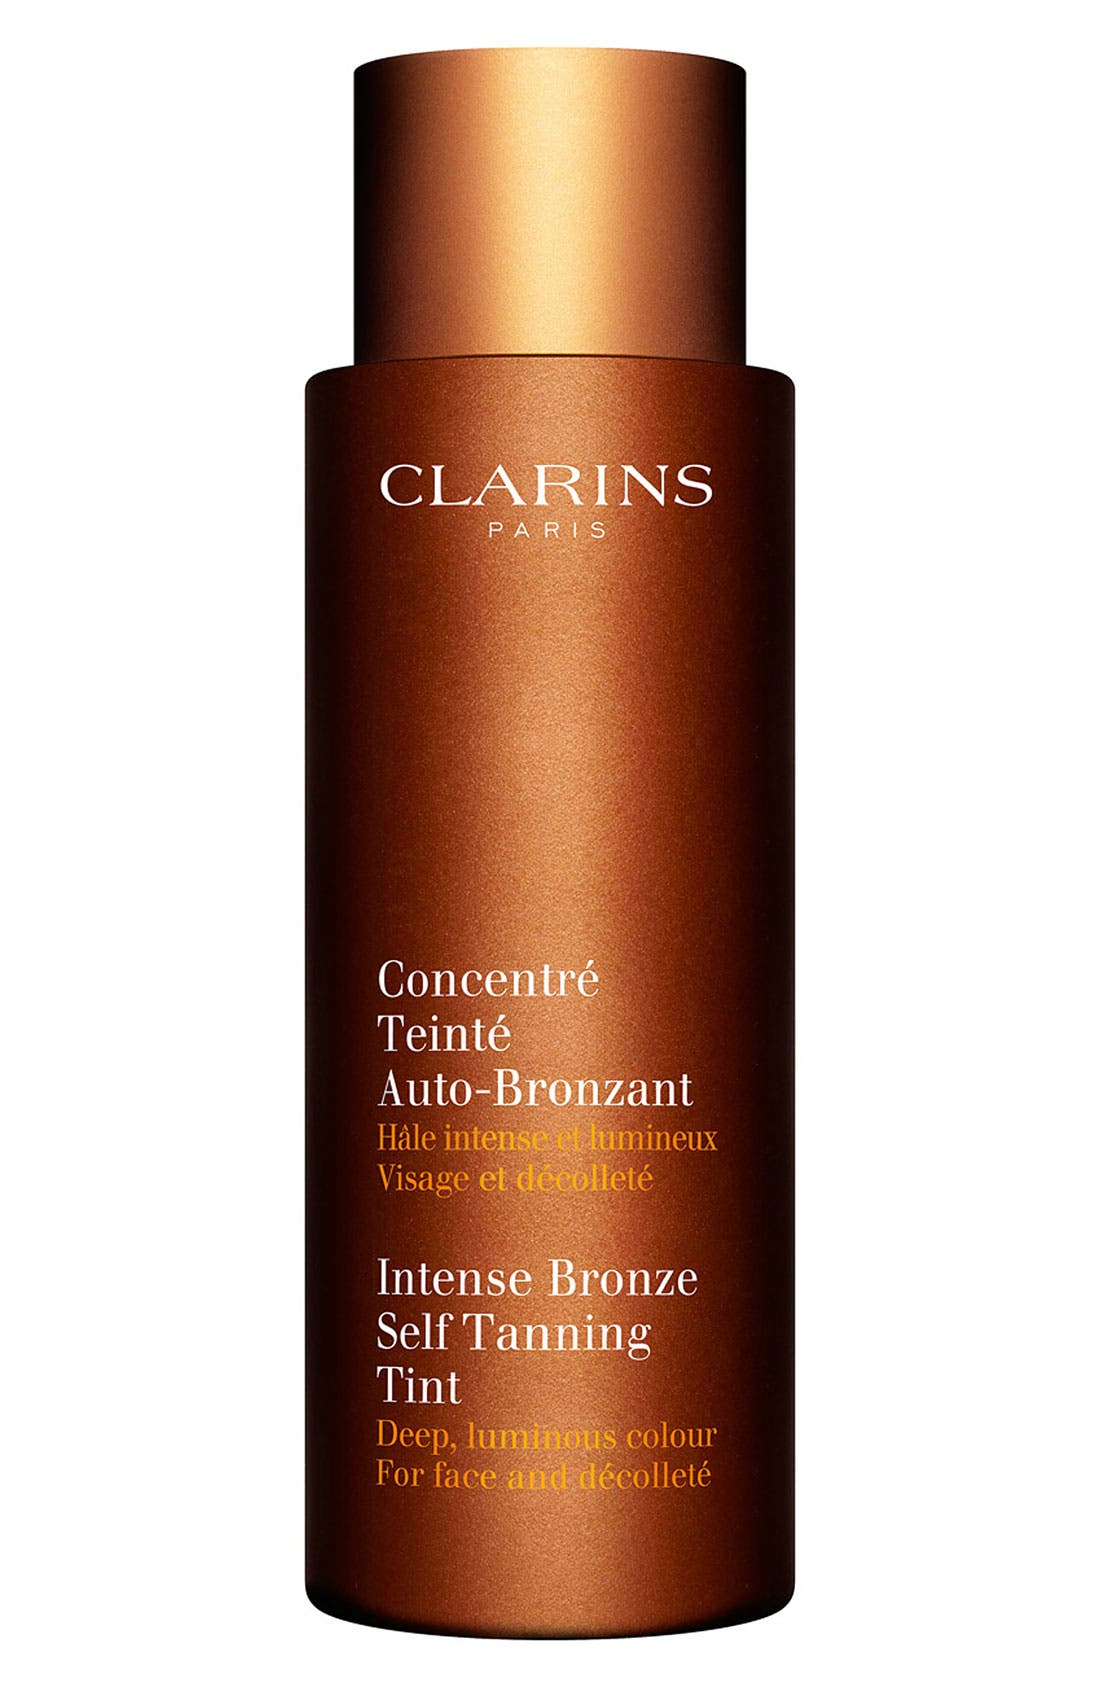 Intense Bronze Self Tanning Tint,                         Main,                         color, 000